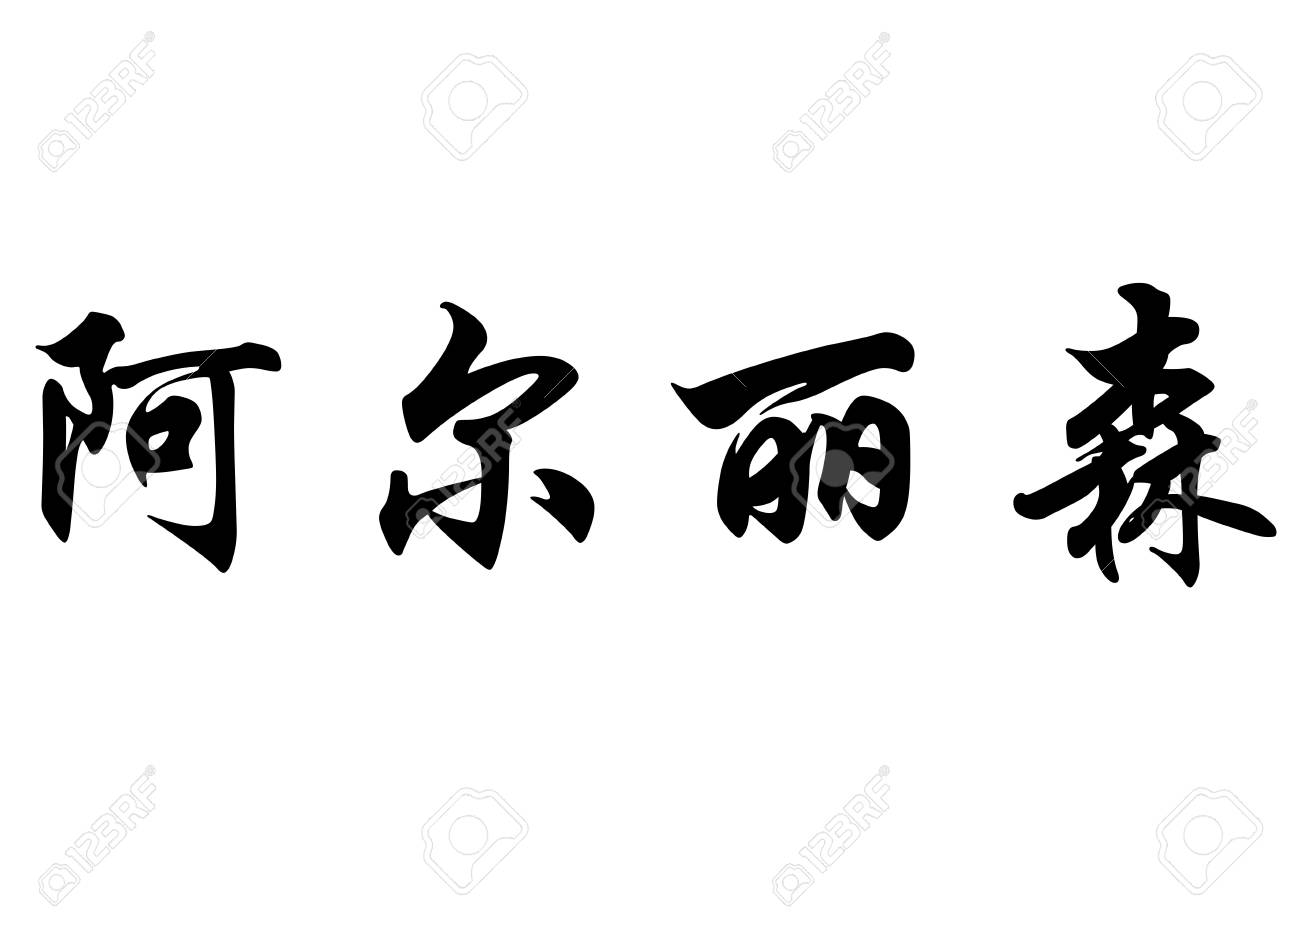 English Name Arlyson In Chinese Kanji Calligraphy Characters Stock